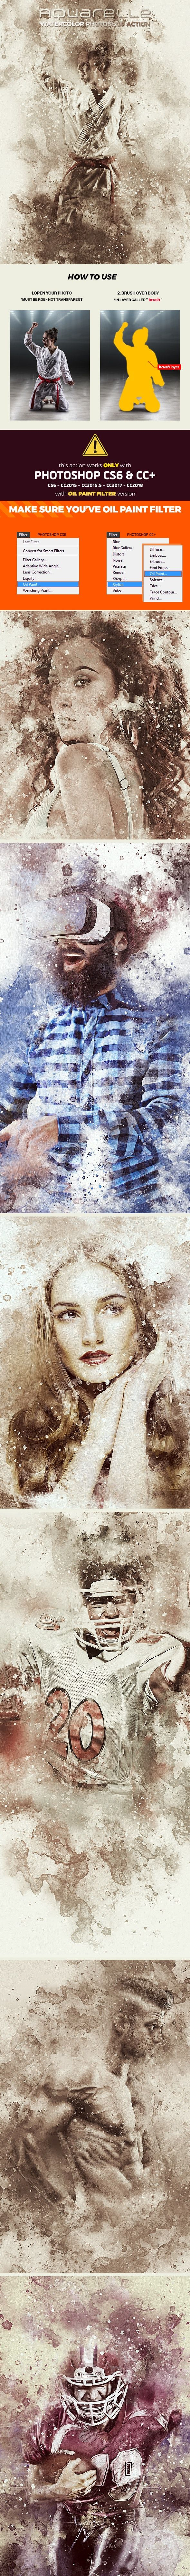 Aquarelle Watercolor Photoshop Action Photo Effects Photoshop